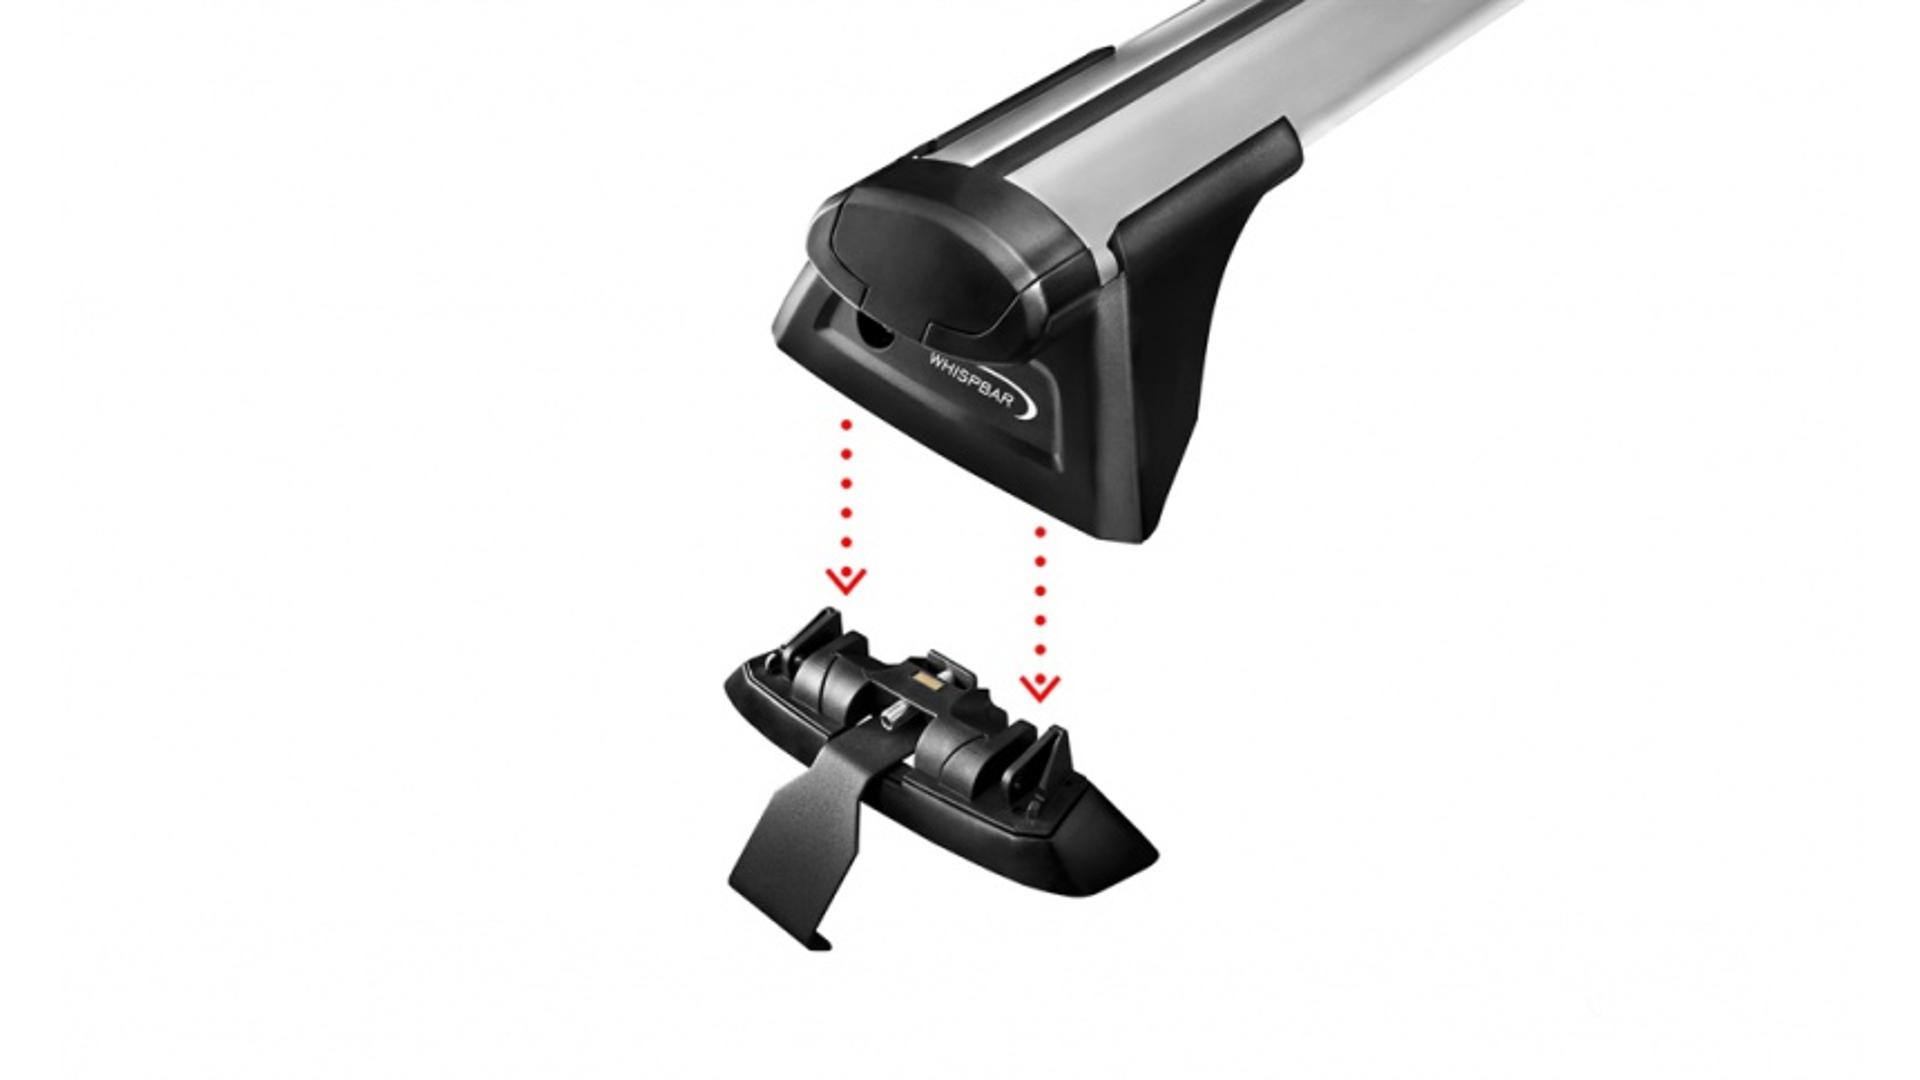 Whispbar montážní sada - Clamp Mount - K1036W